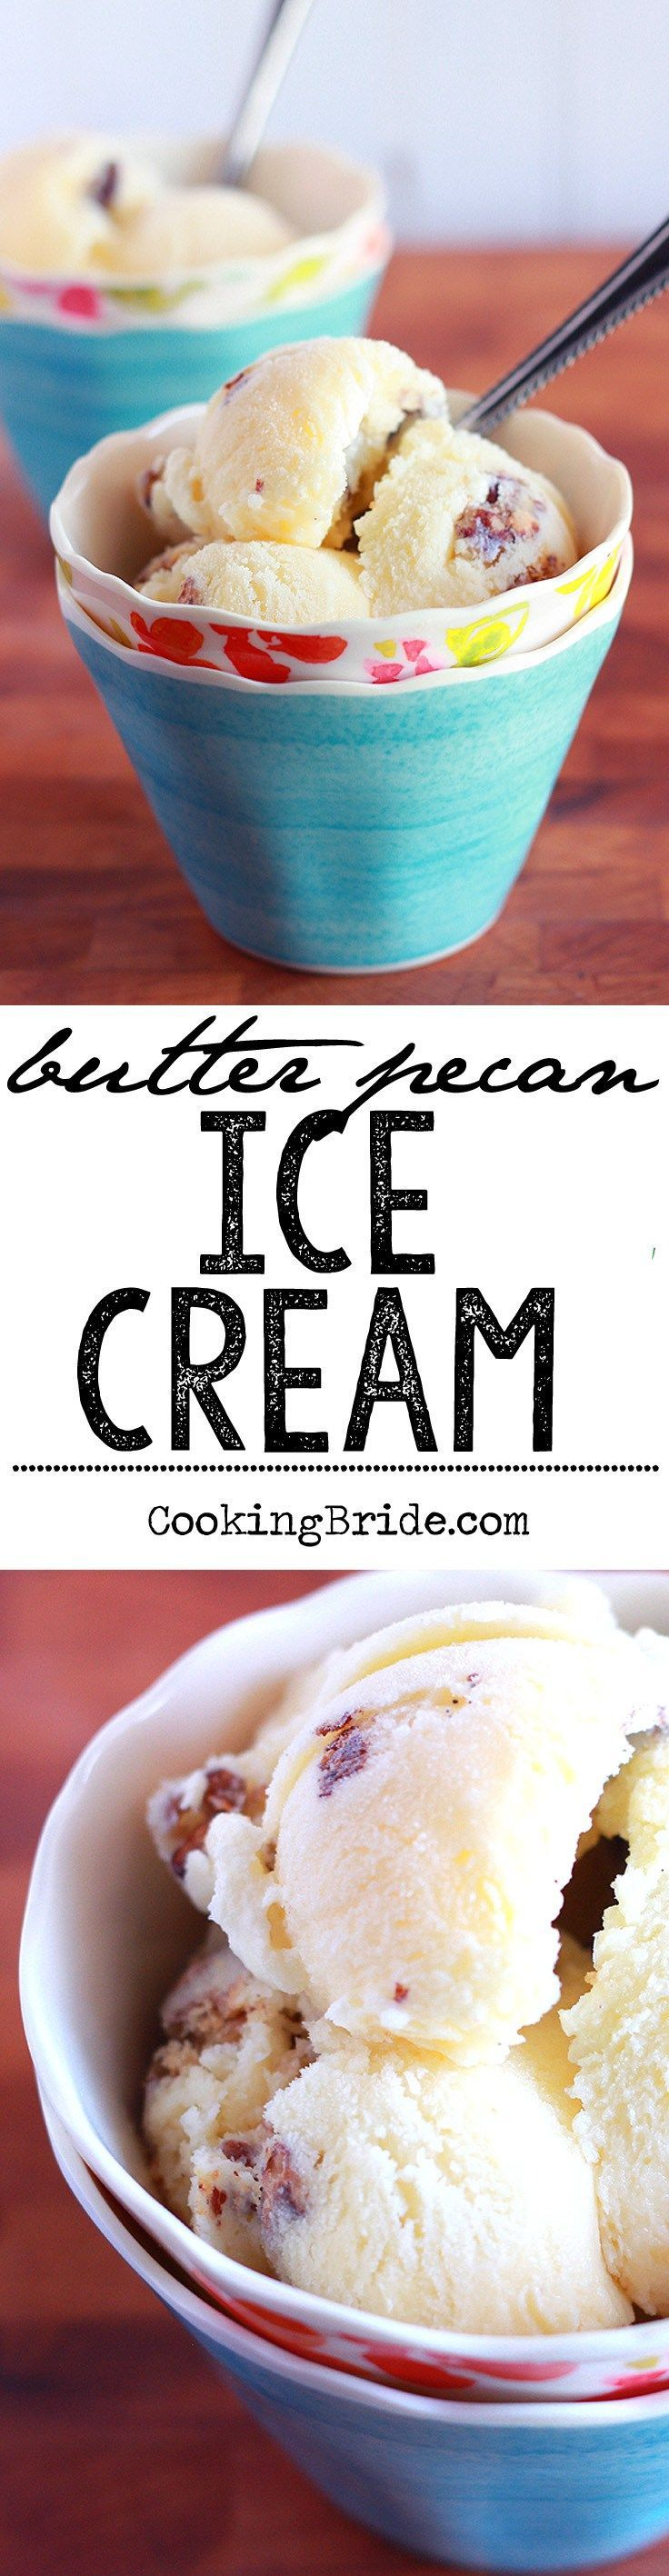 This creamy custard-based recipe for homemade butter pecan ice cream contains toasted, buttered pecans, vanilla, and cream. #Icecream #ButterPecan #Summer #Frozen